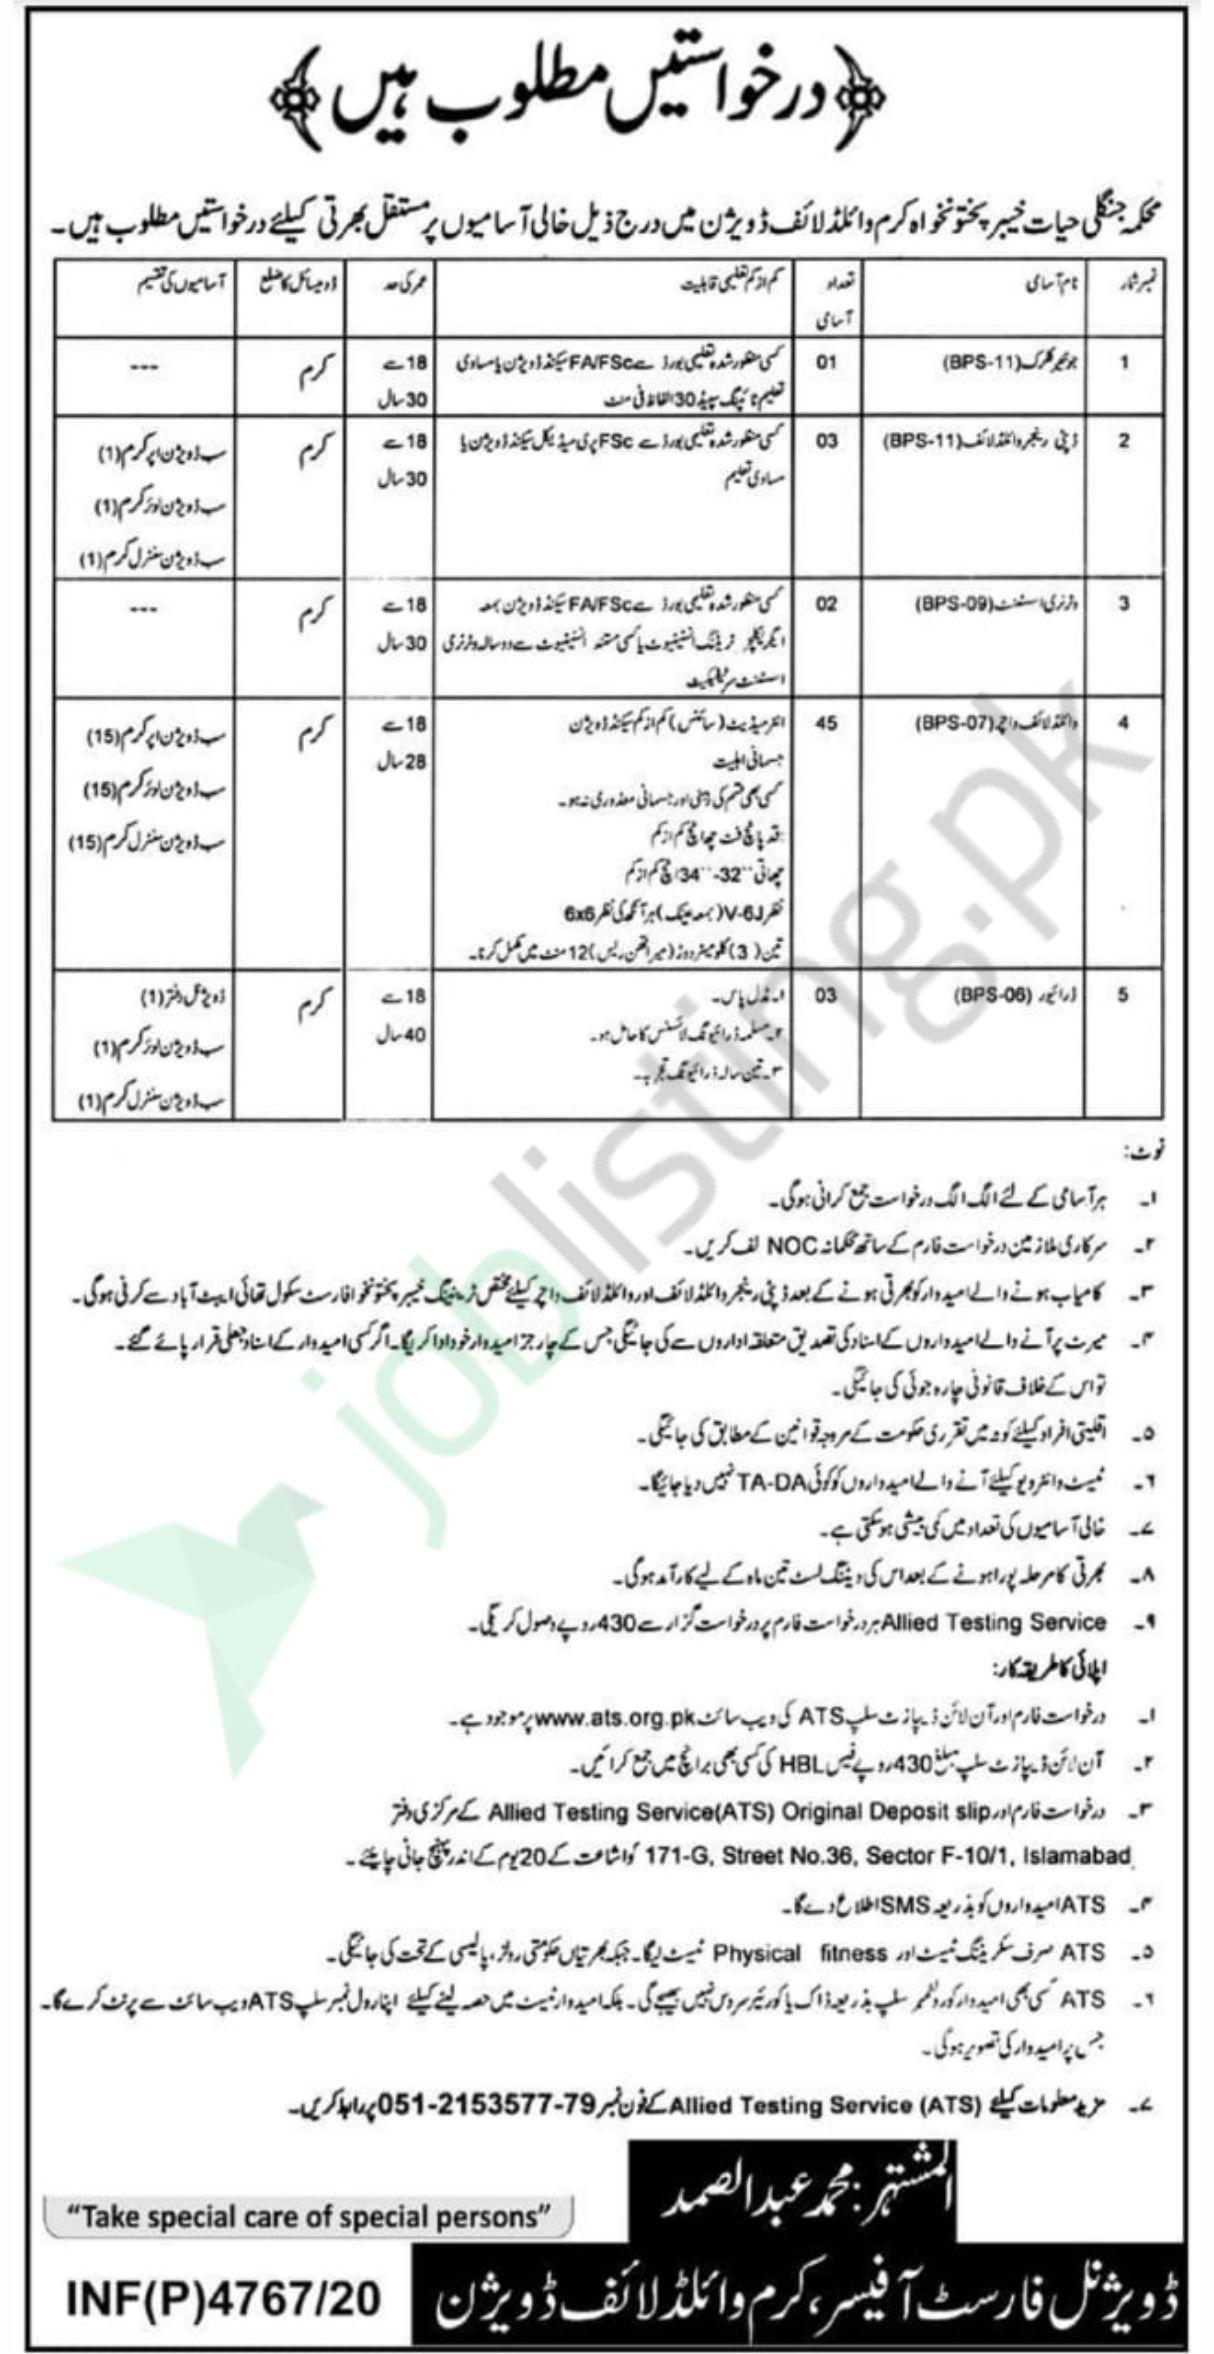 Wildlife Division Kurram Govt of KPK jobs